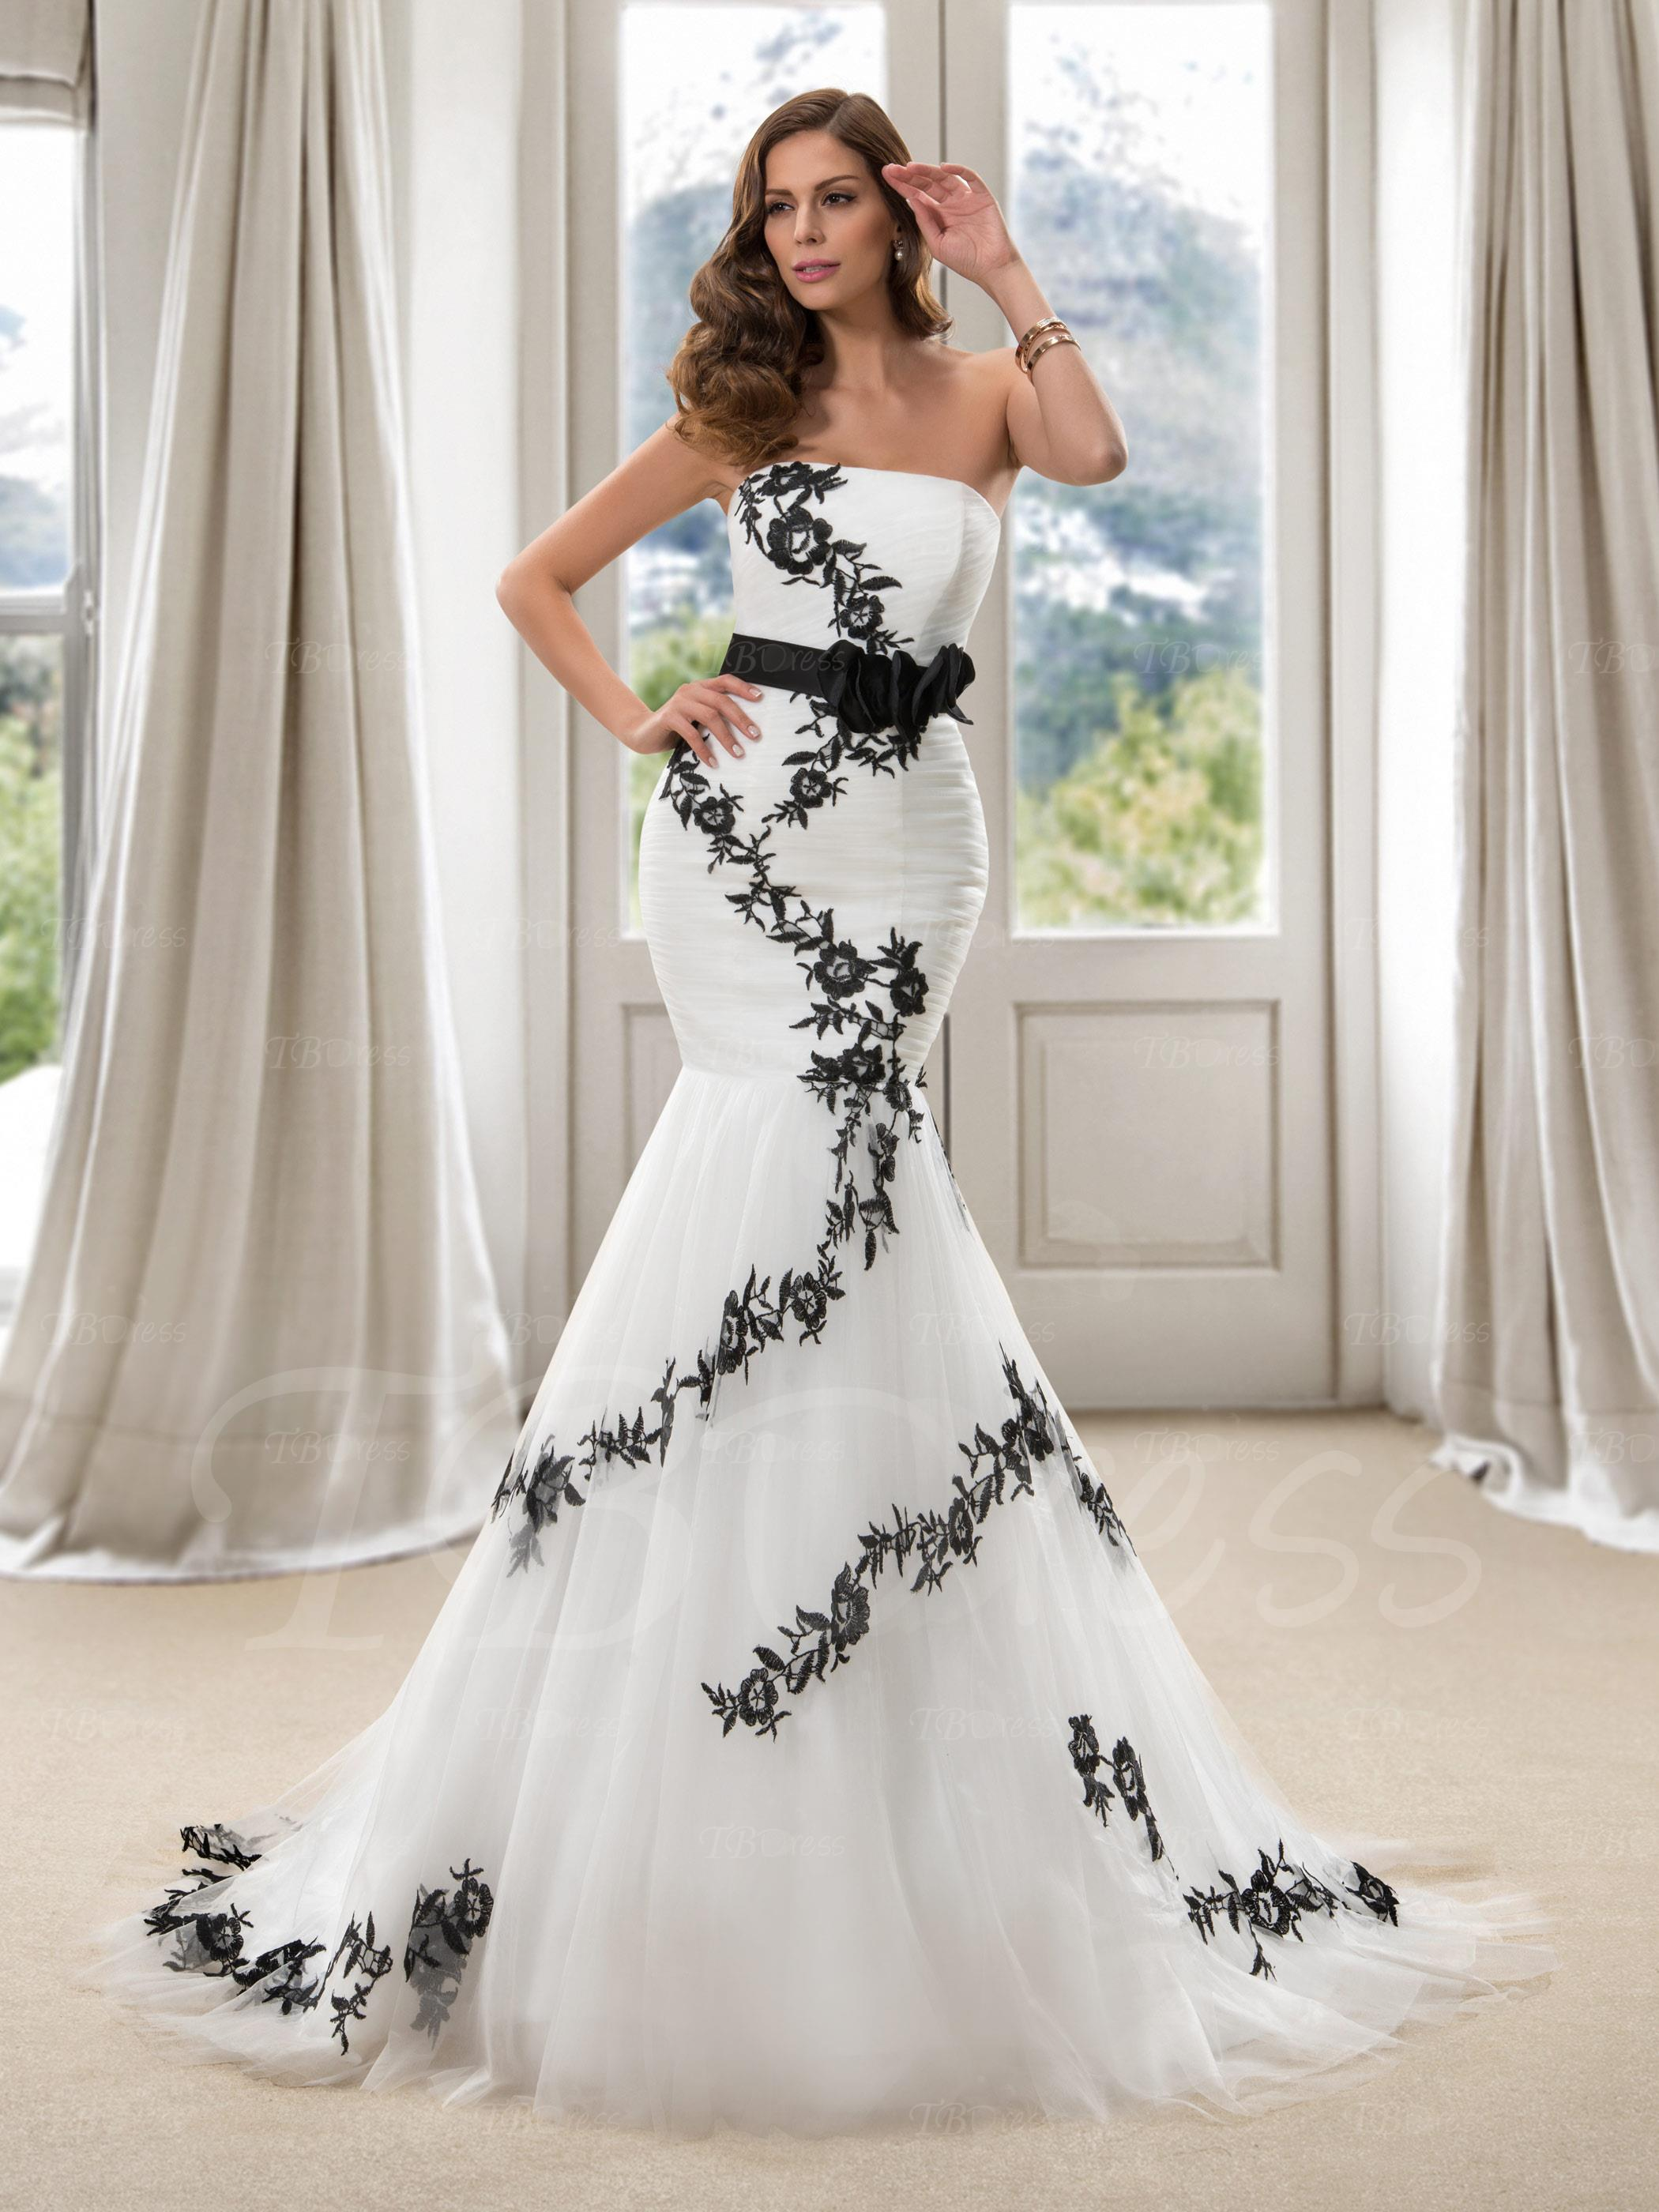 White mermaid wedding dress with black lace